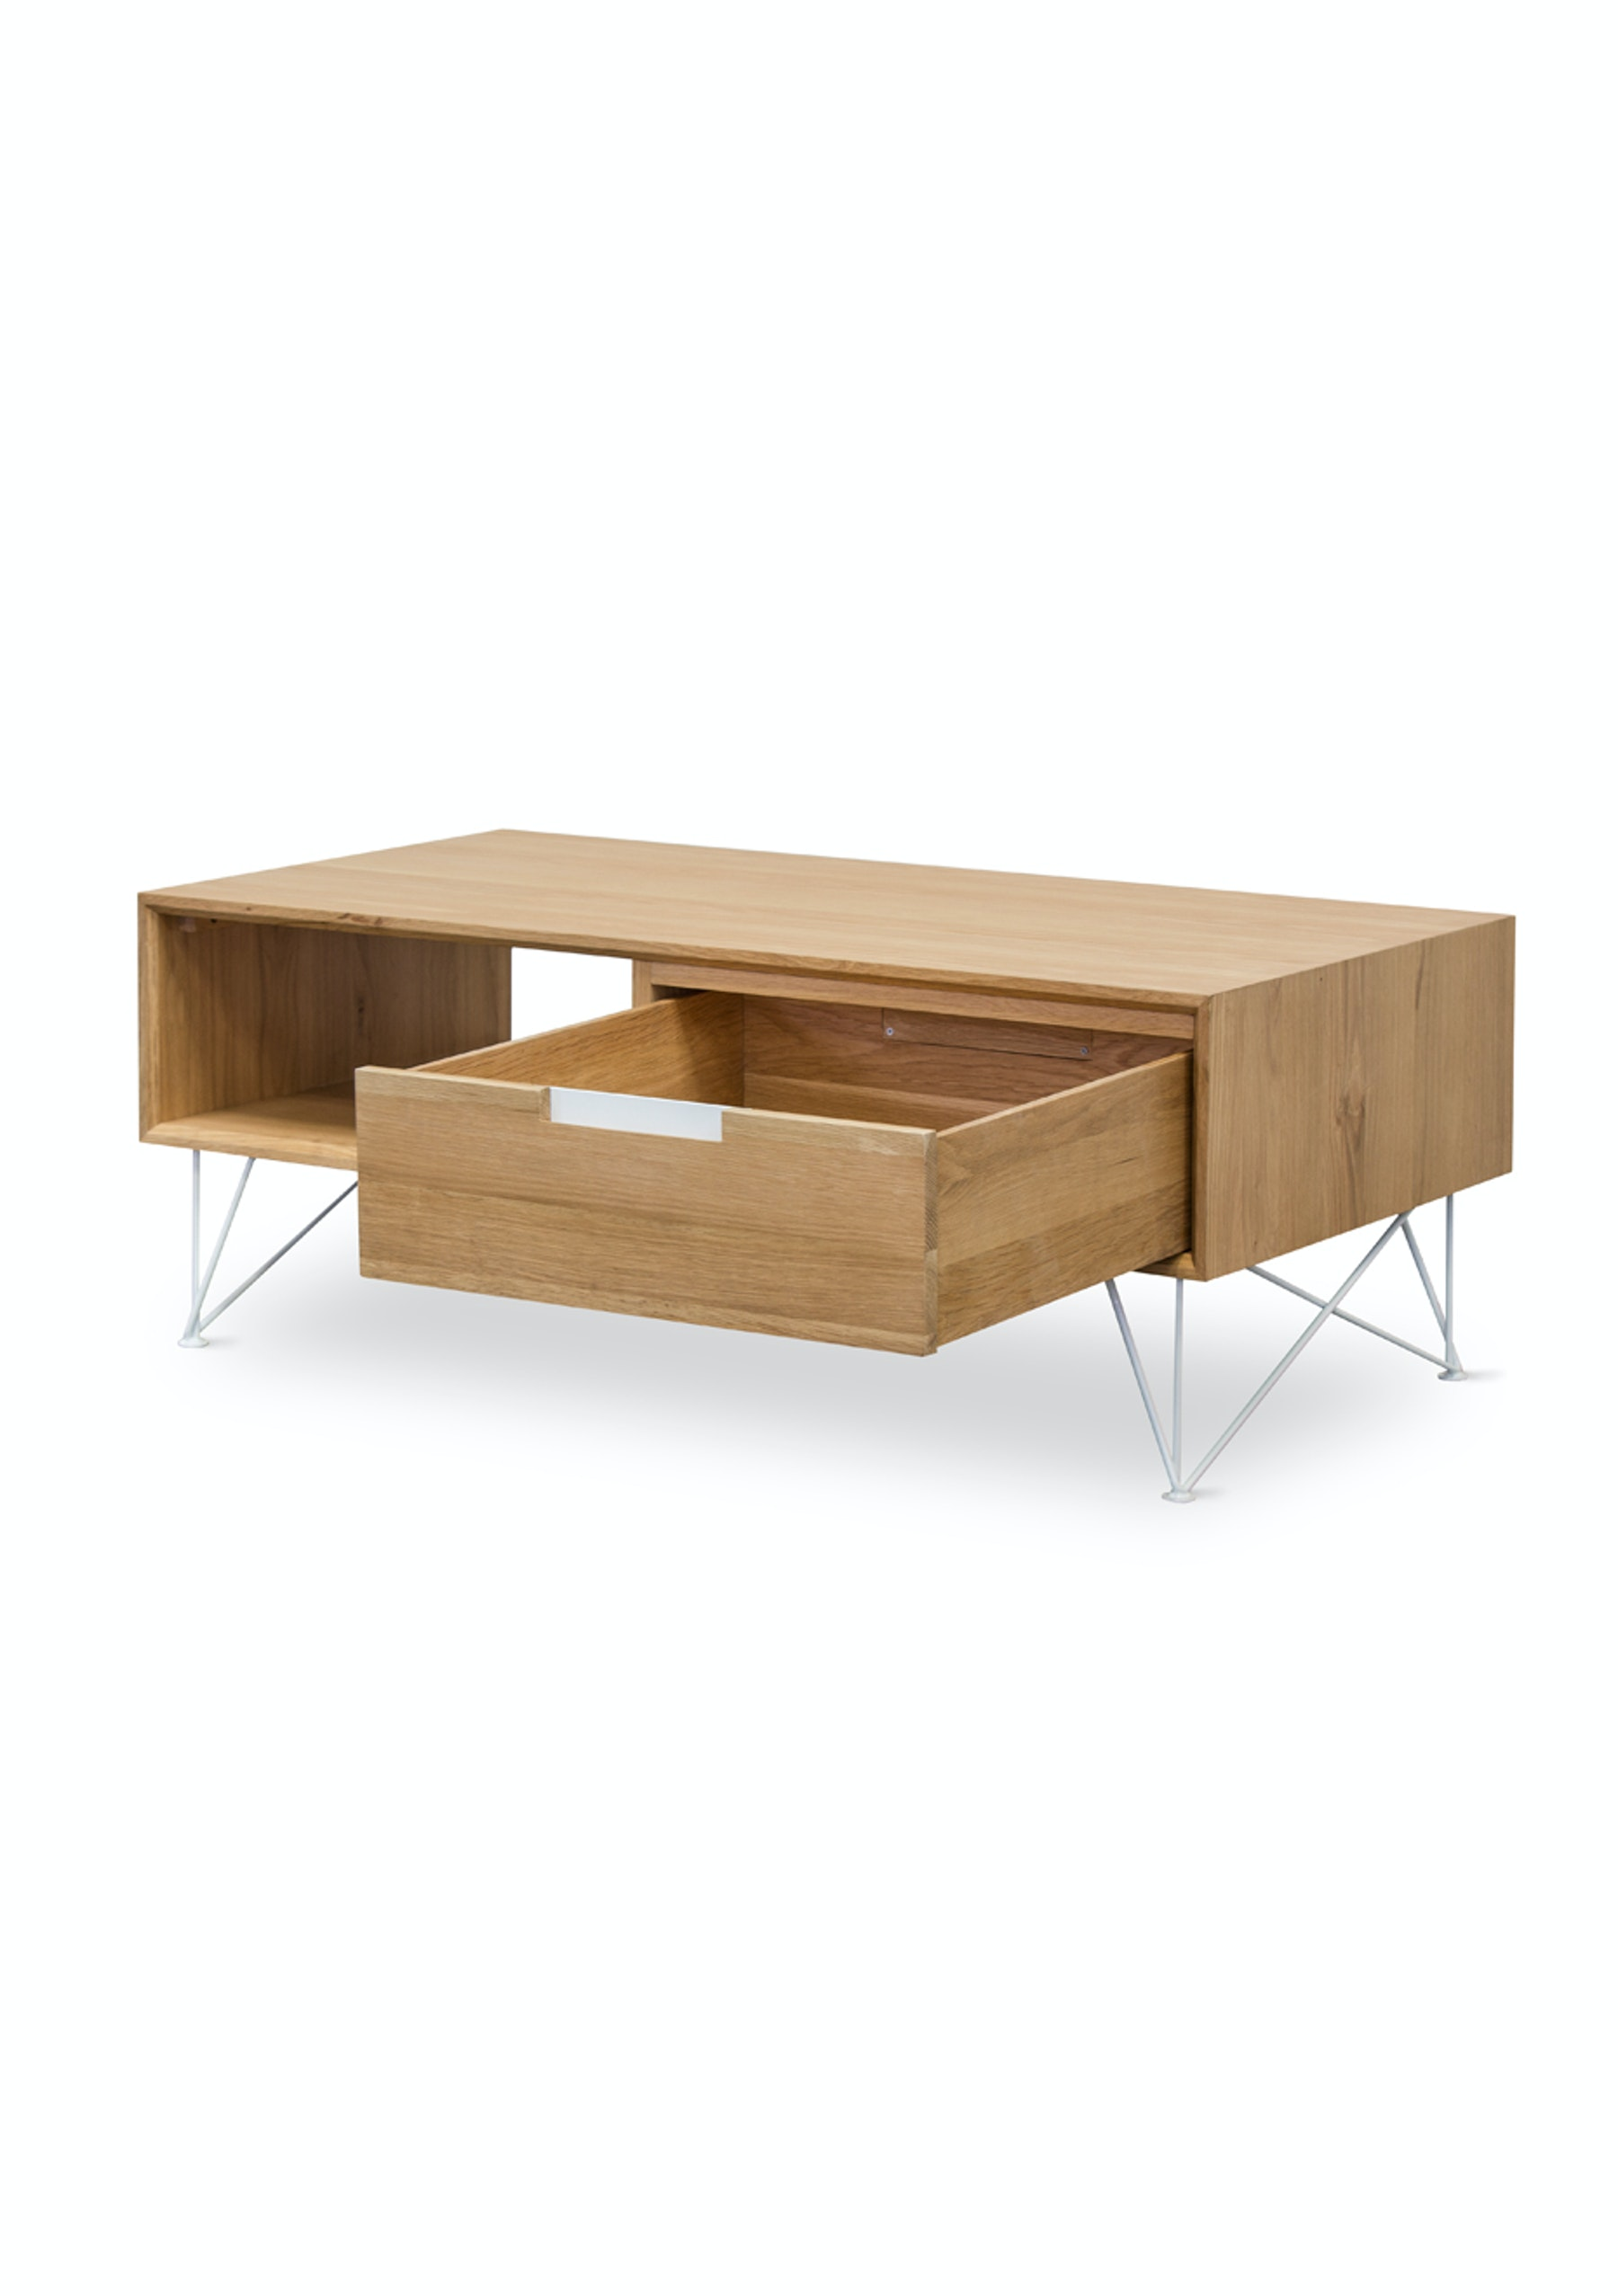 Furniture By Design Pietement Coffee Table Scandi Inspired